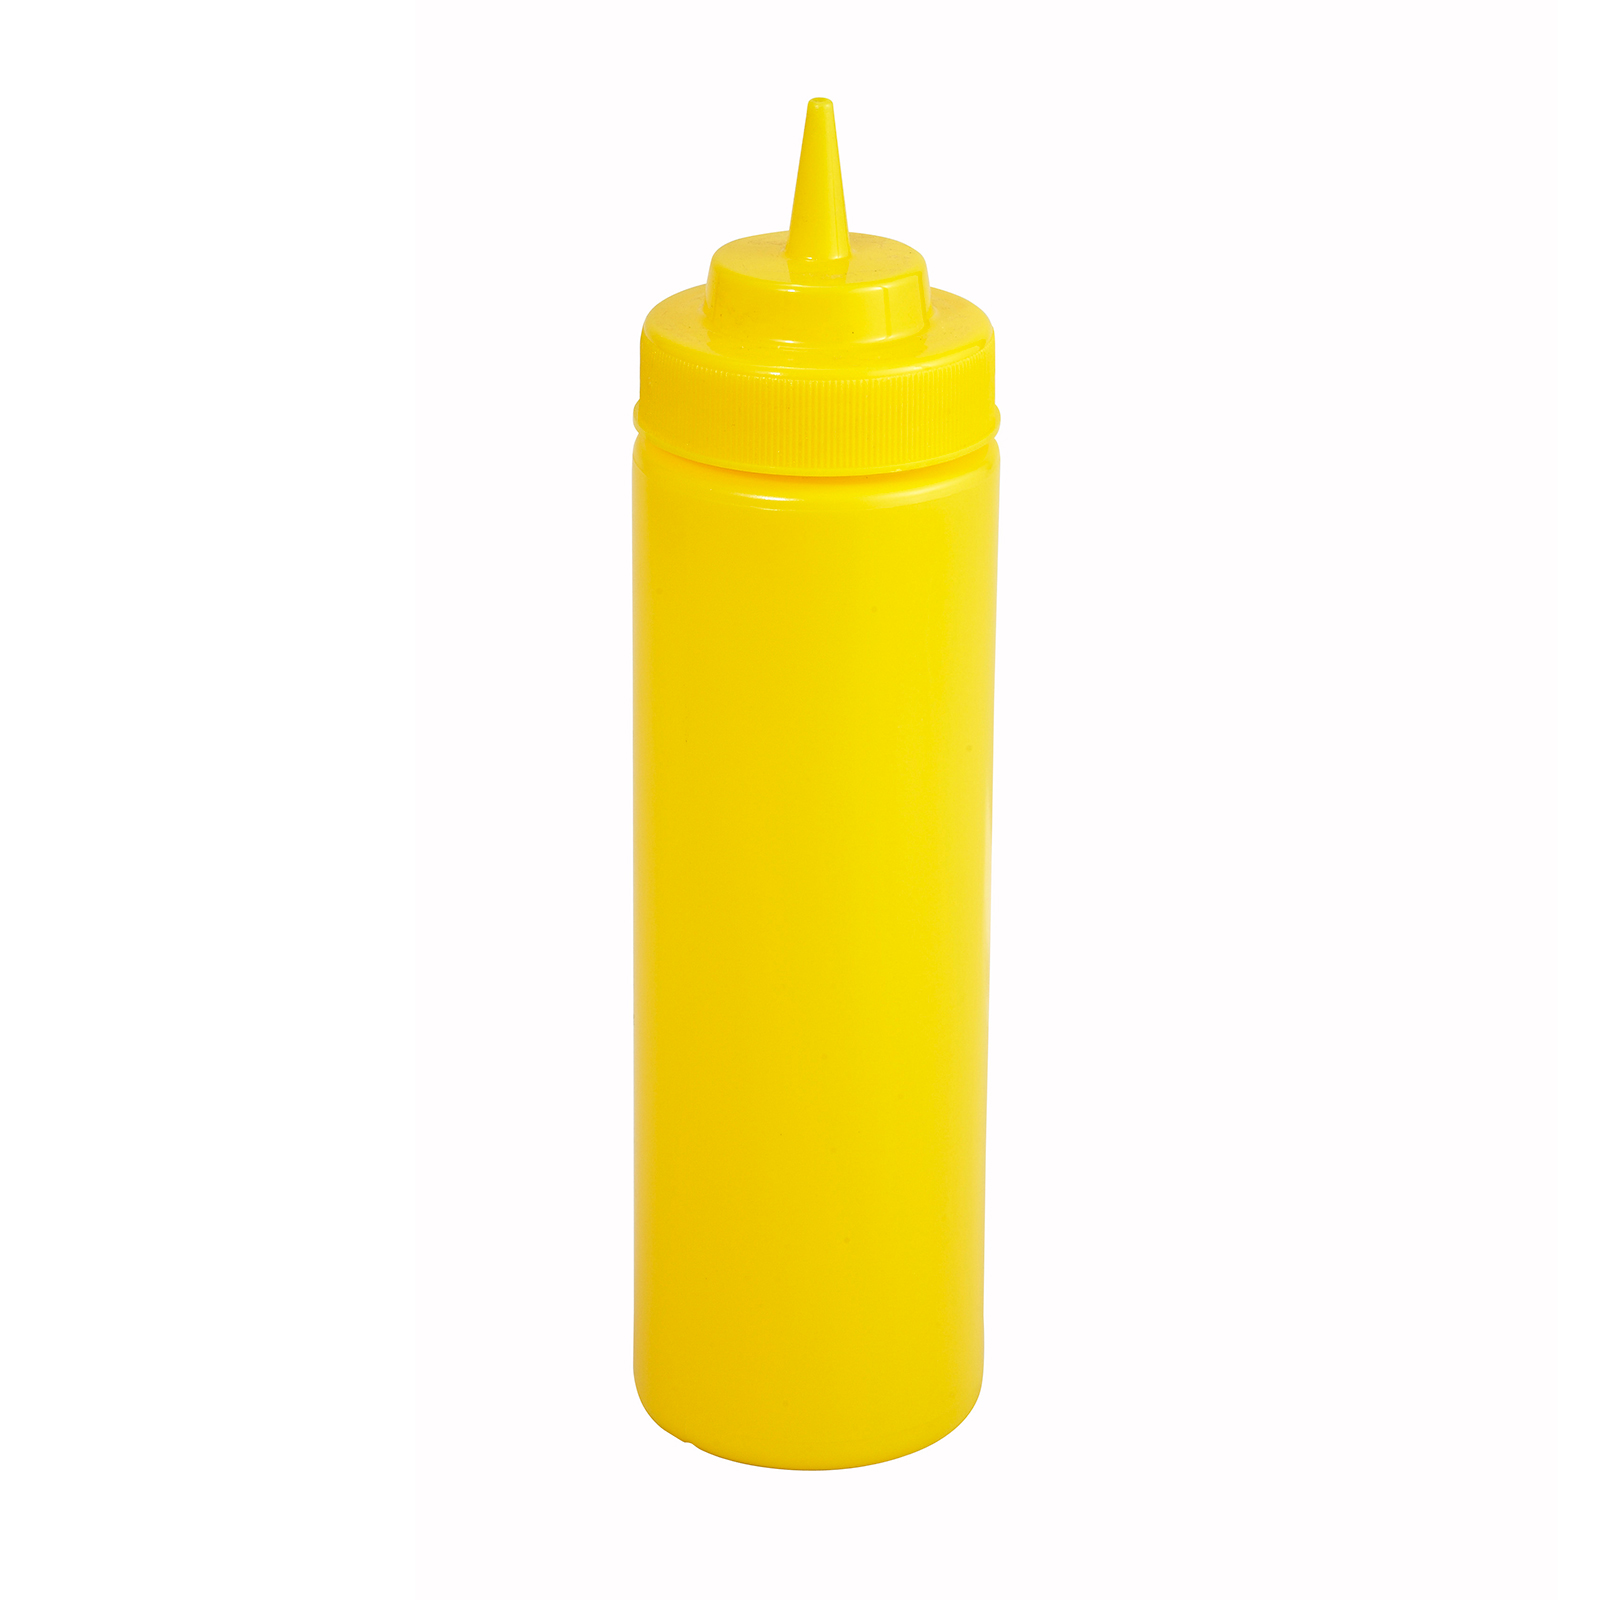 Winco PSW-12Y squeeze bottle